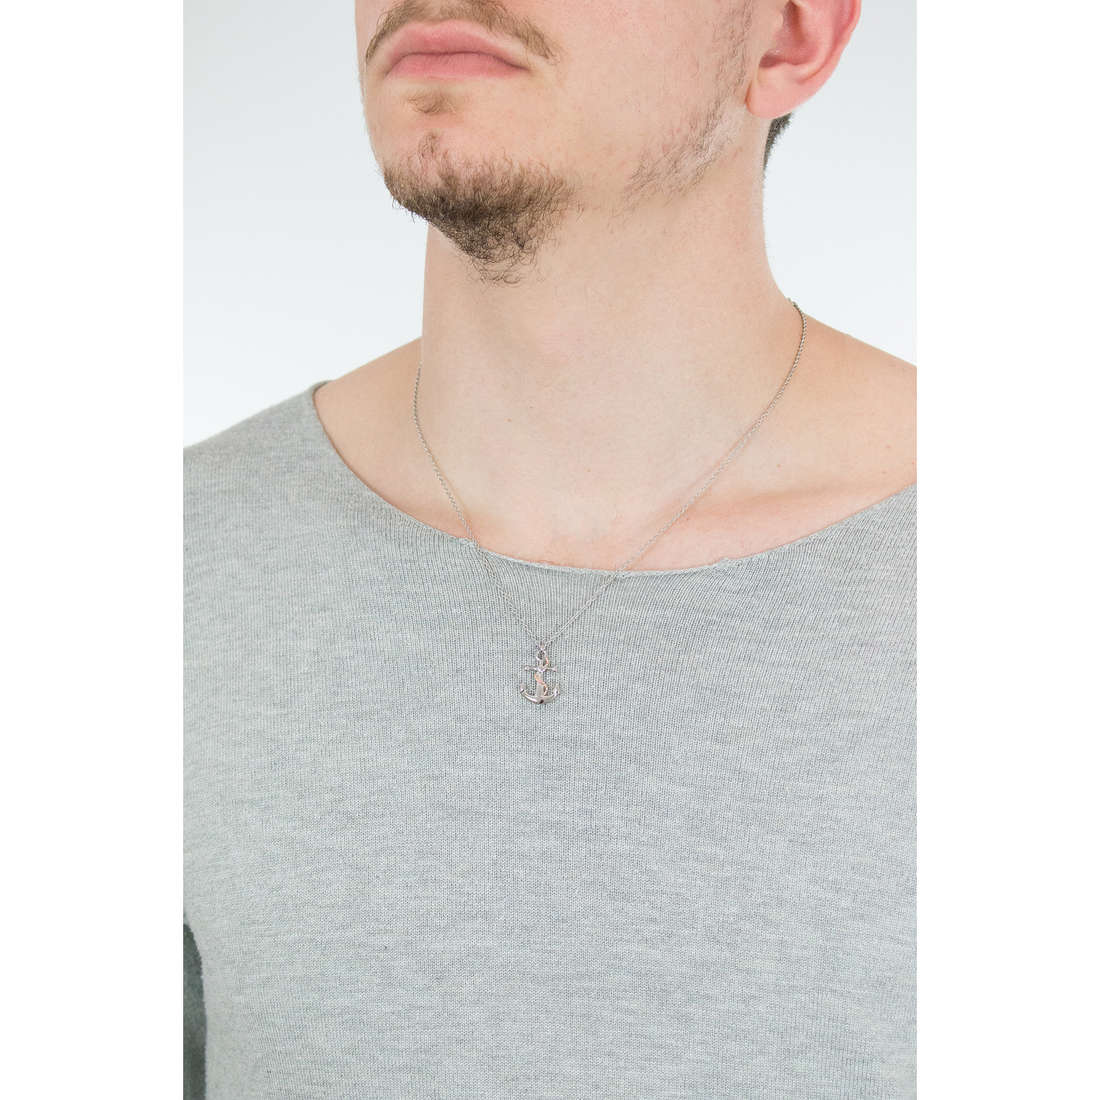 Luca Barra necklaces man LBCA366 photo wearing